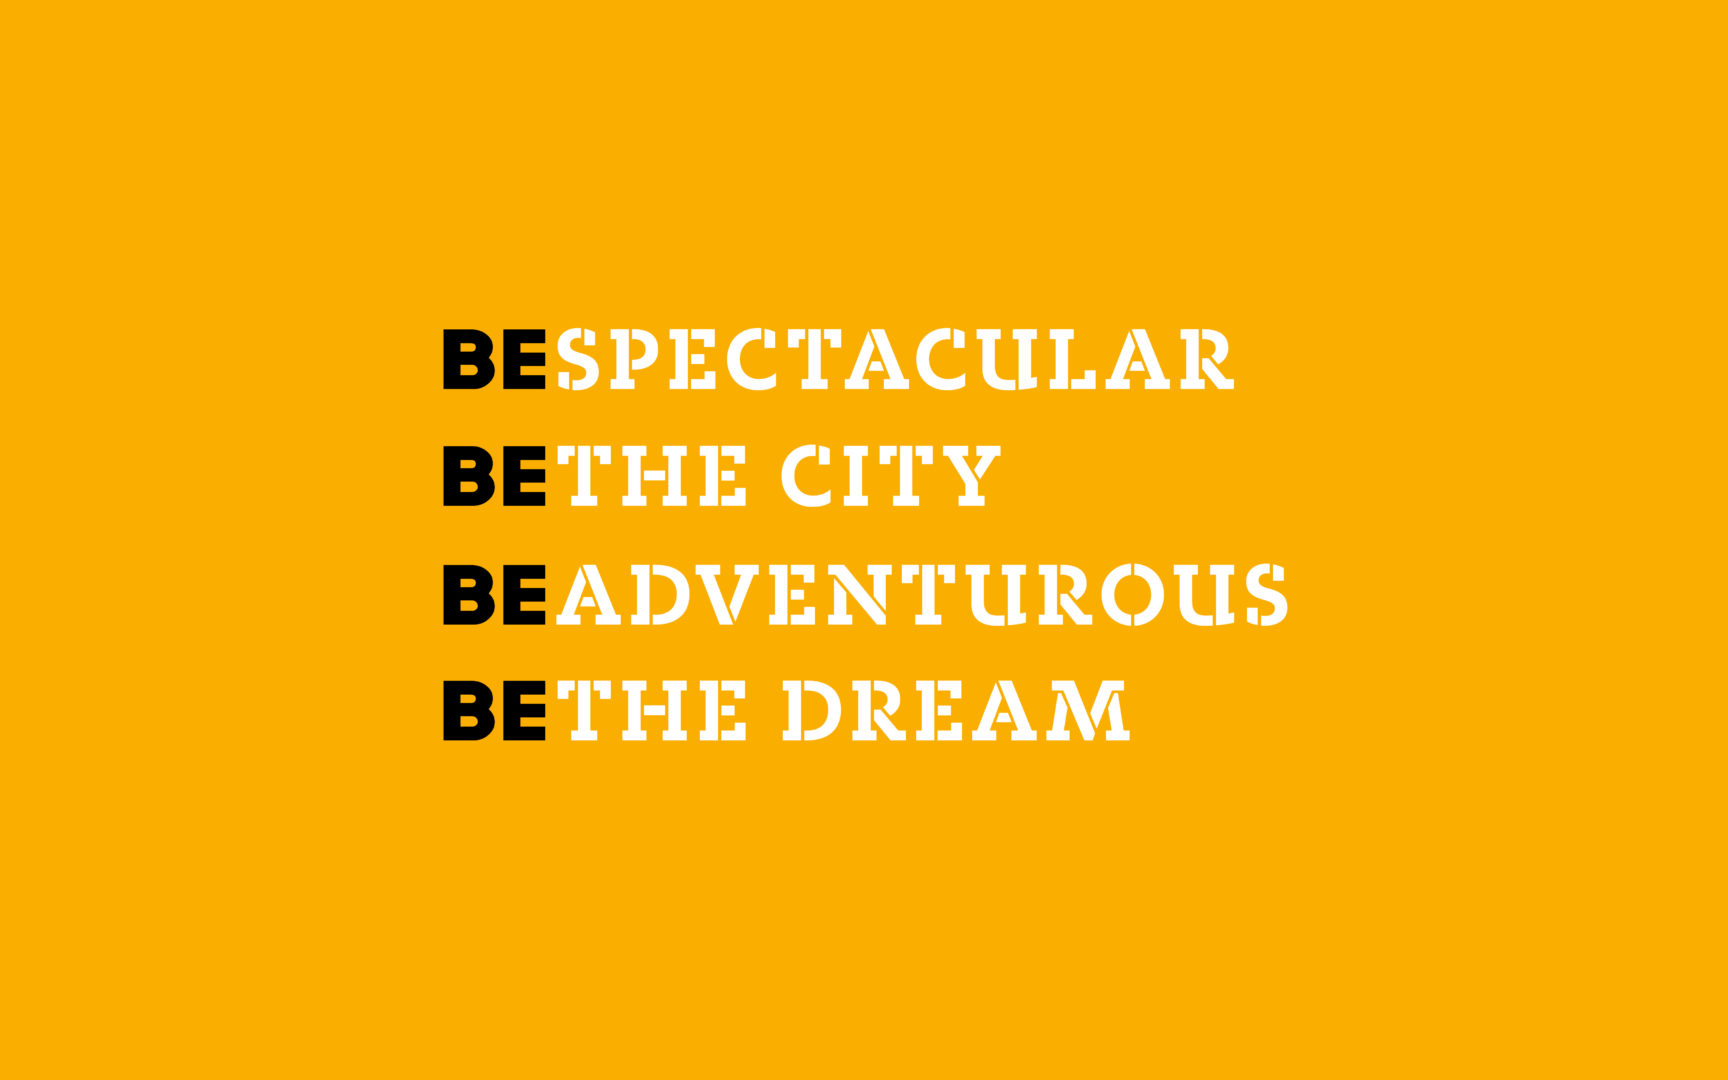 BE Spectacular, Be The City, Be Adventurous, Be The Dream